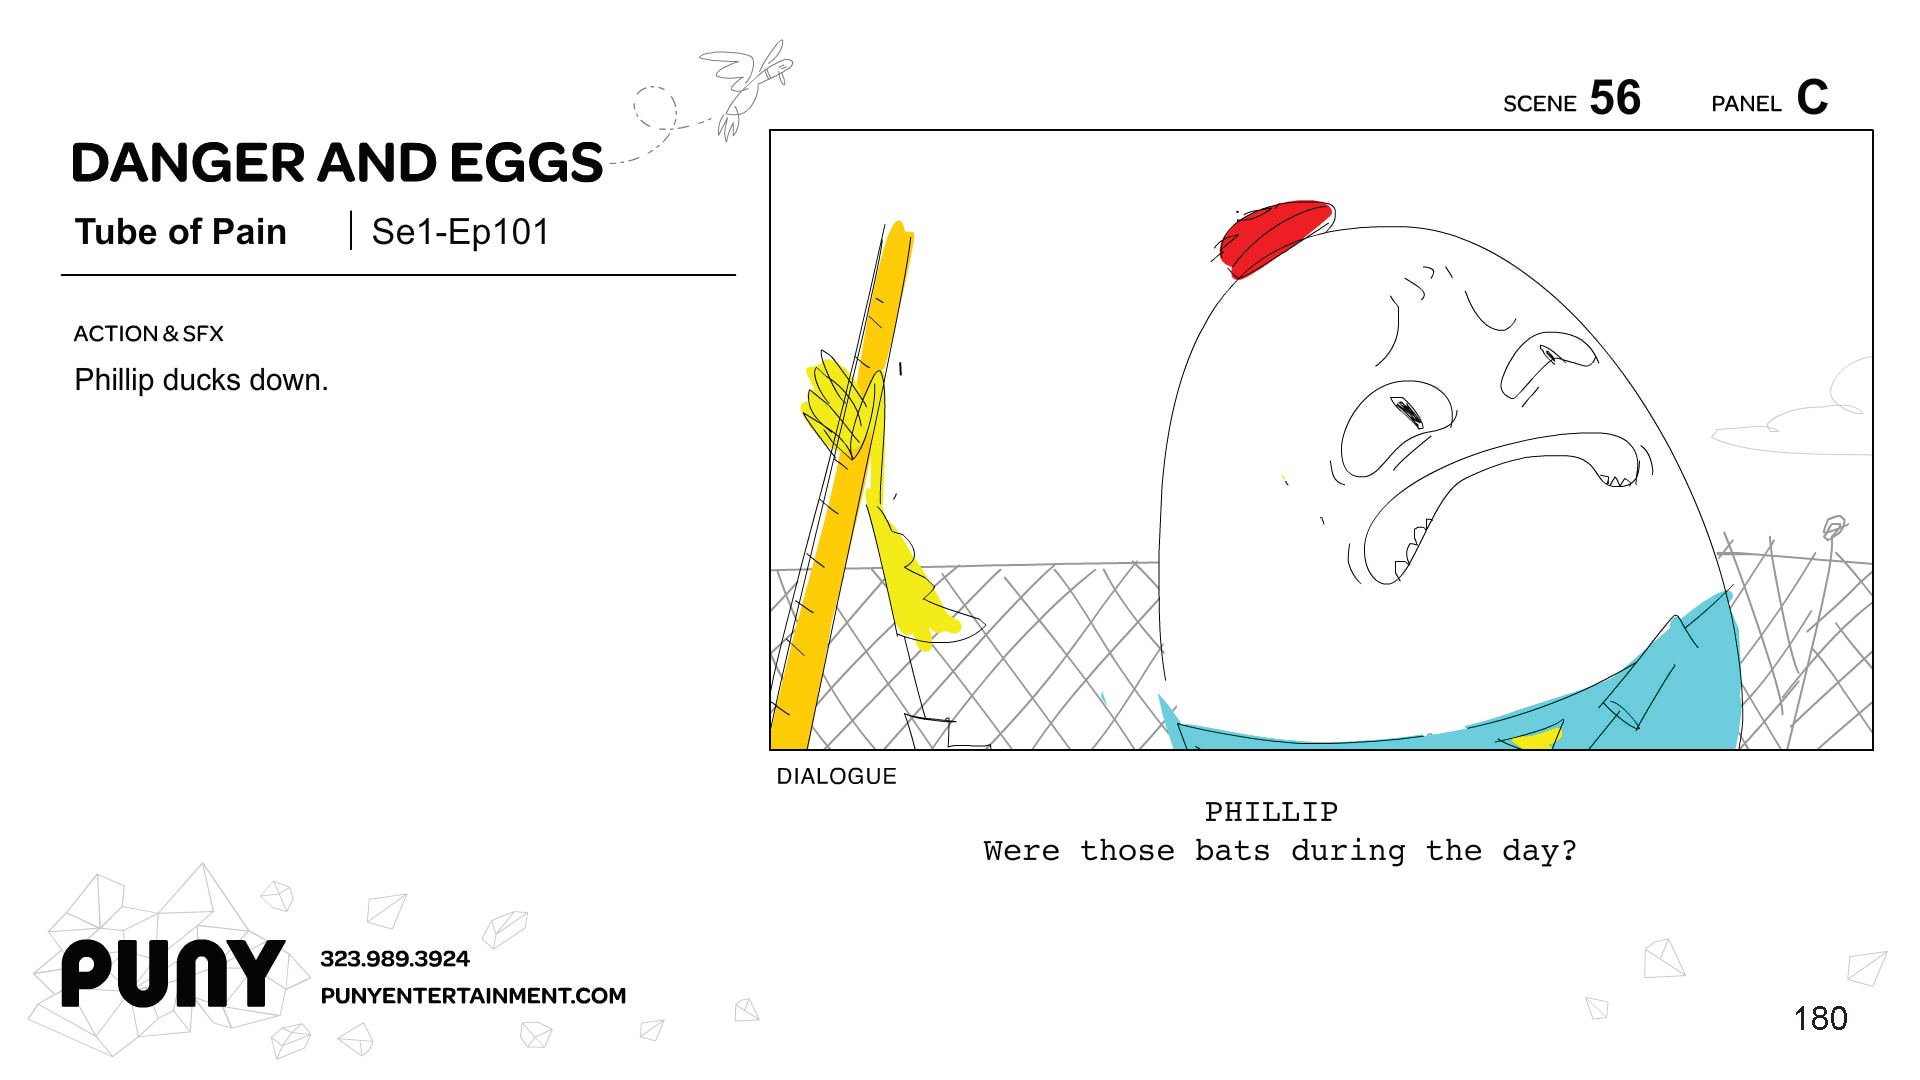 MikeOwens_STORYBOARDS_DangerAndEggs_Page_180.png